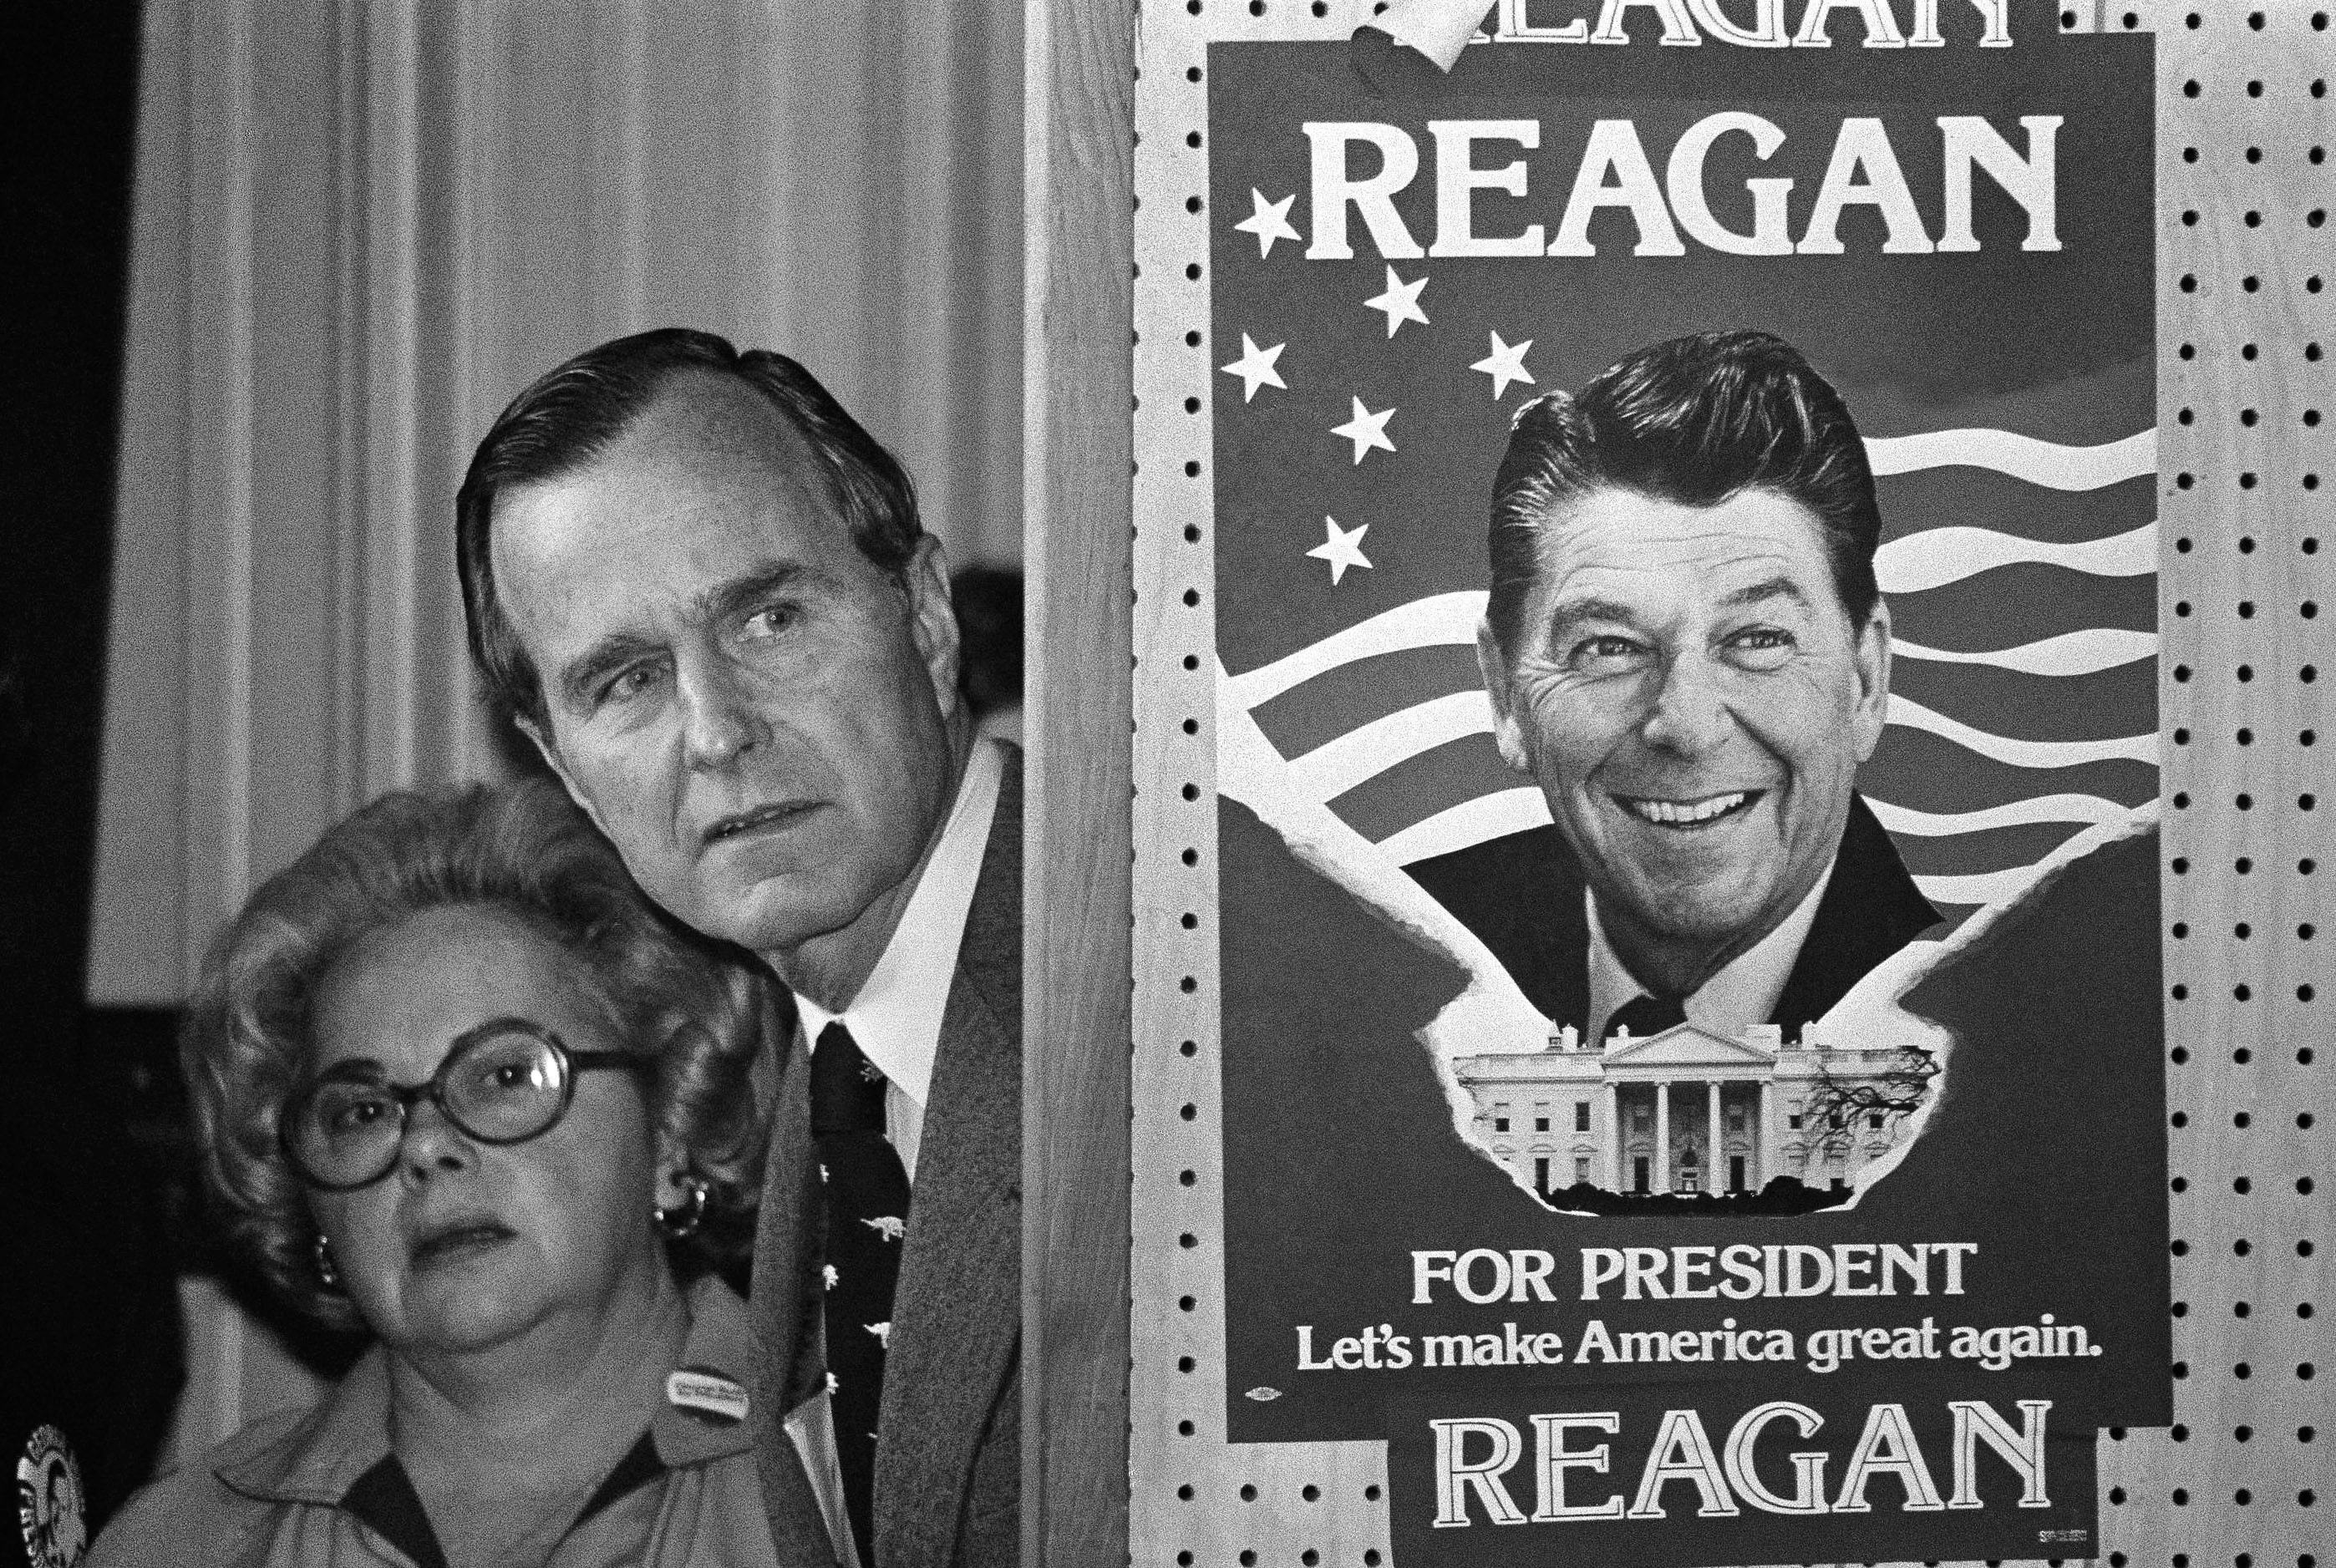 In this March 4, 1980 photo, George H.W. Bush and an unidentified woman peek around a partition with a poster of Ronald Reagan, one of his opponents for the Republican party presidential nomination, before he speaks in Columbia, SC. (AP Photo, File)